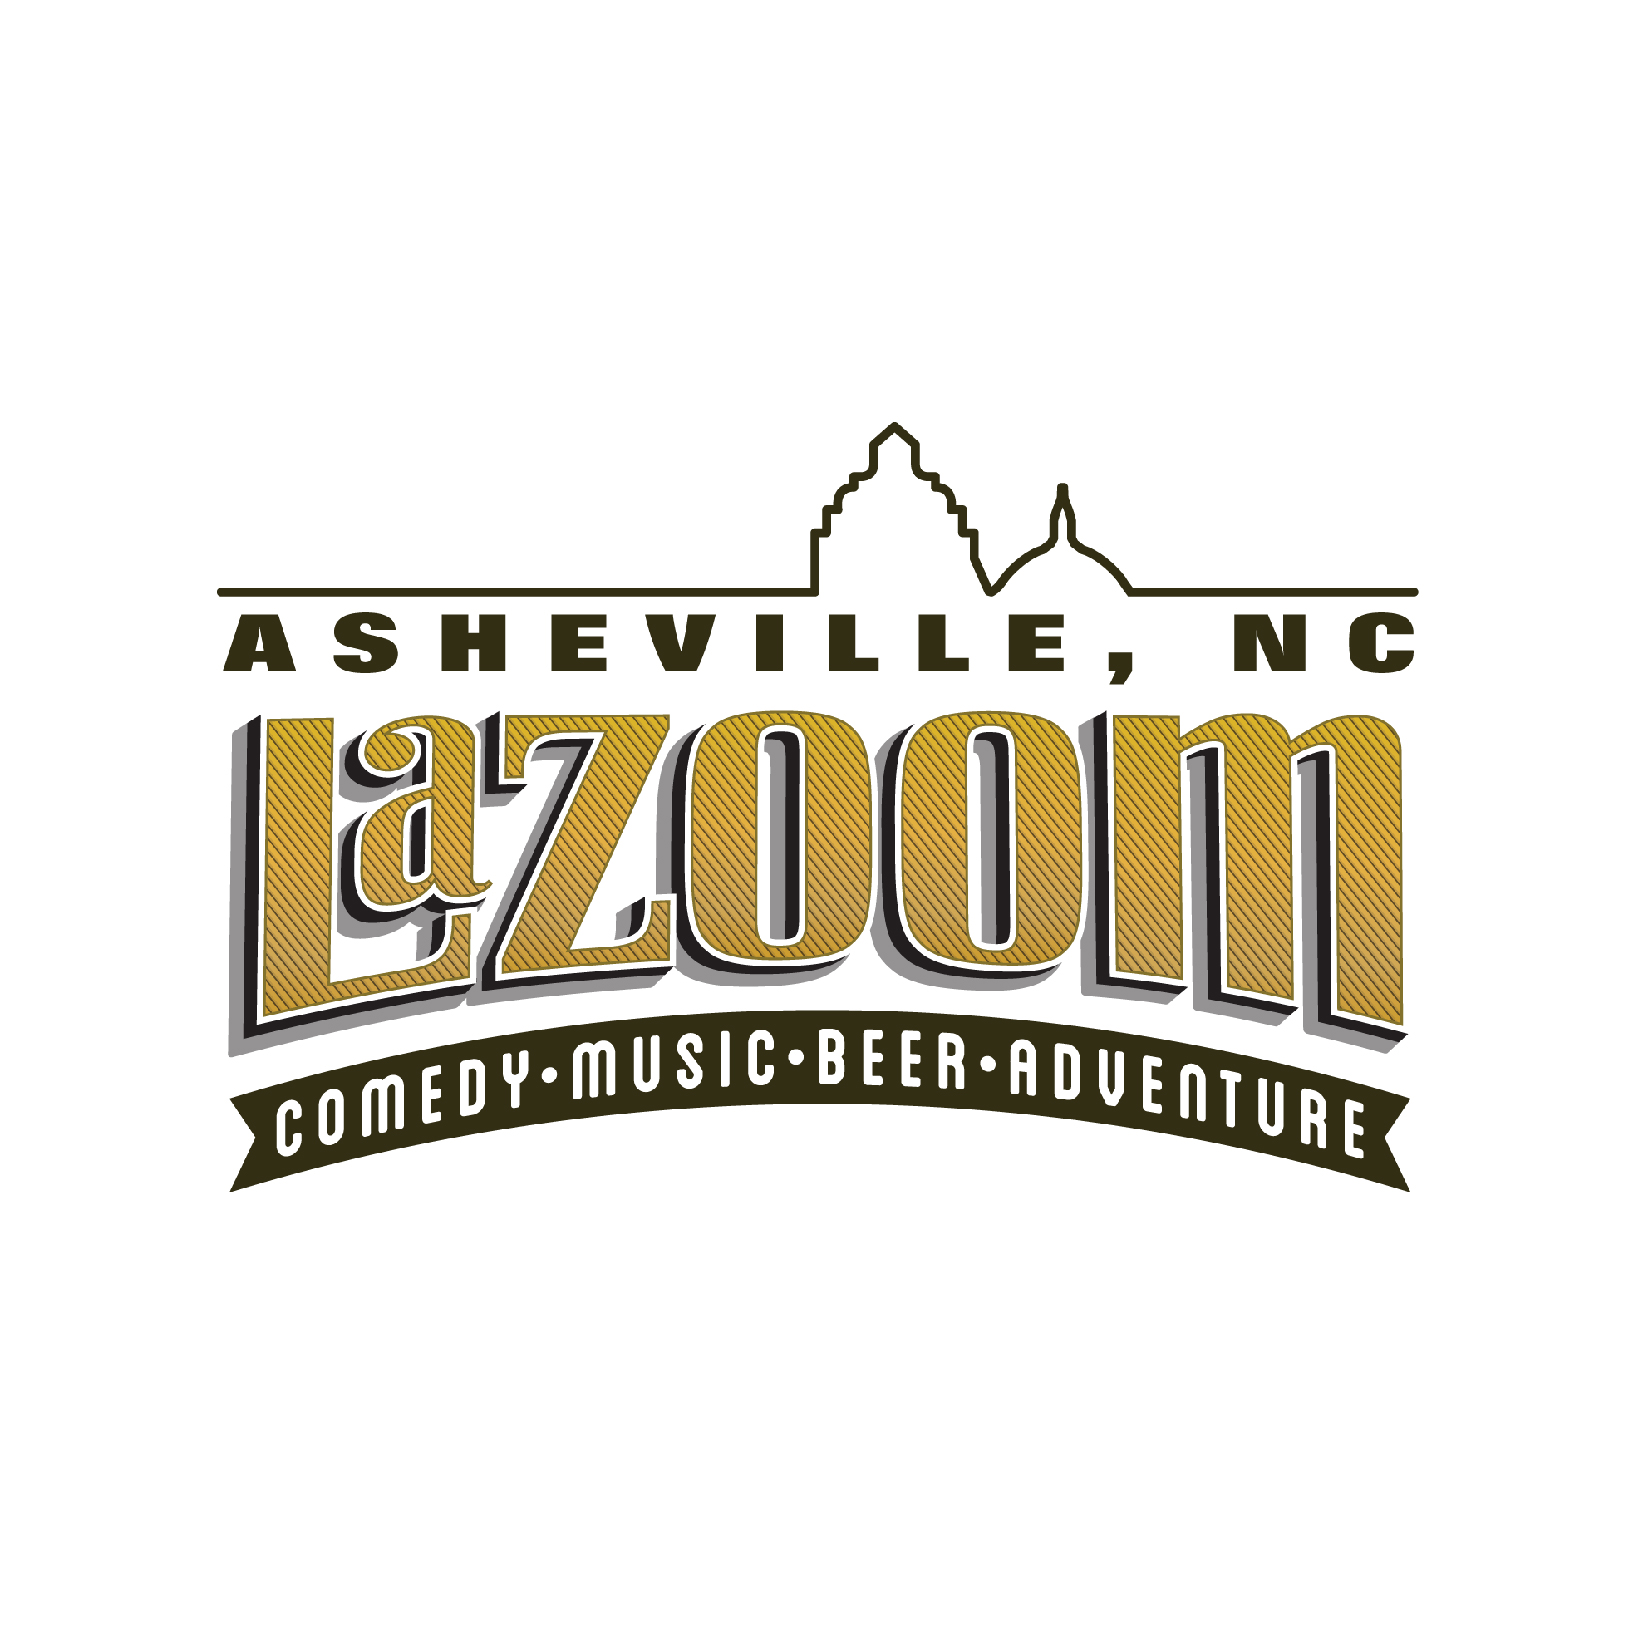 LaZoom Tours - Comedy, Music, Beer, Adventure Logo